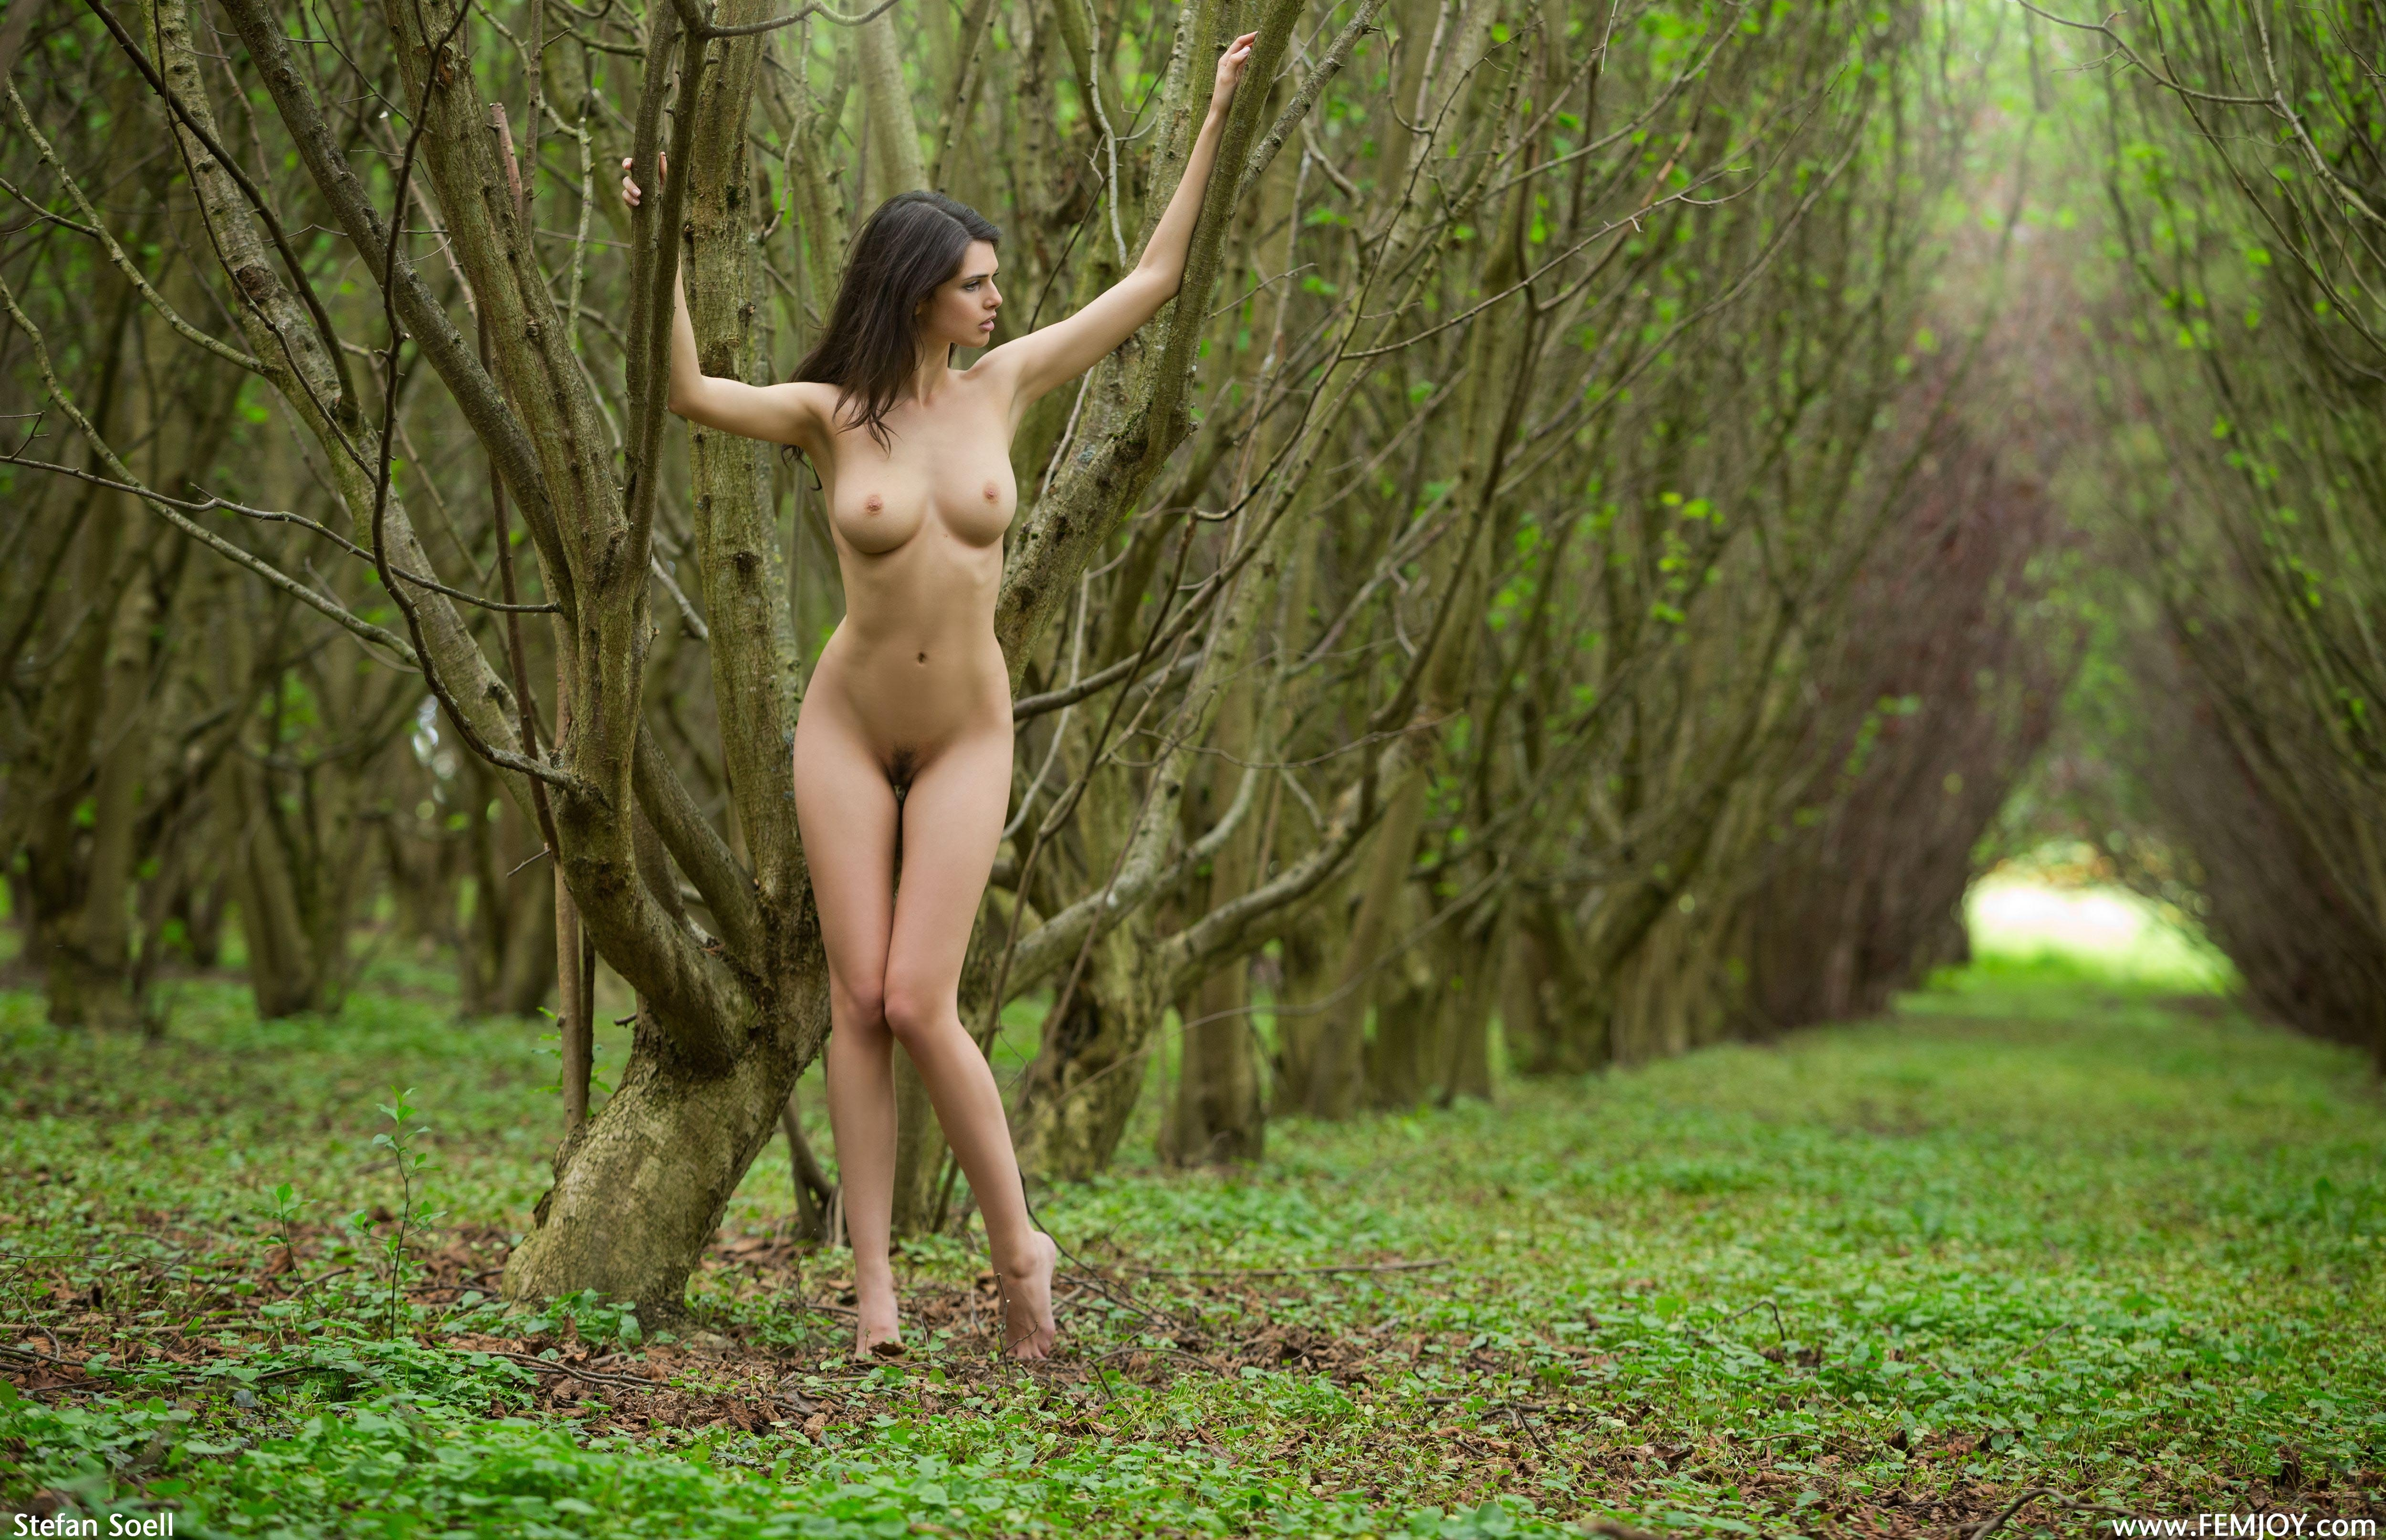 Nude Women With Perfect Tits